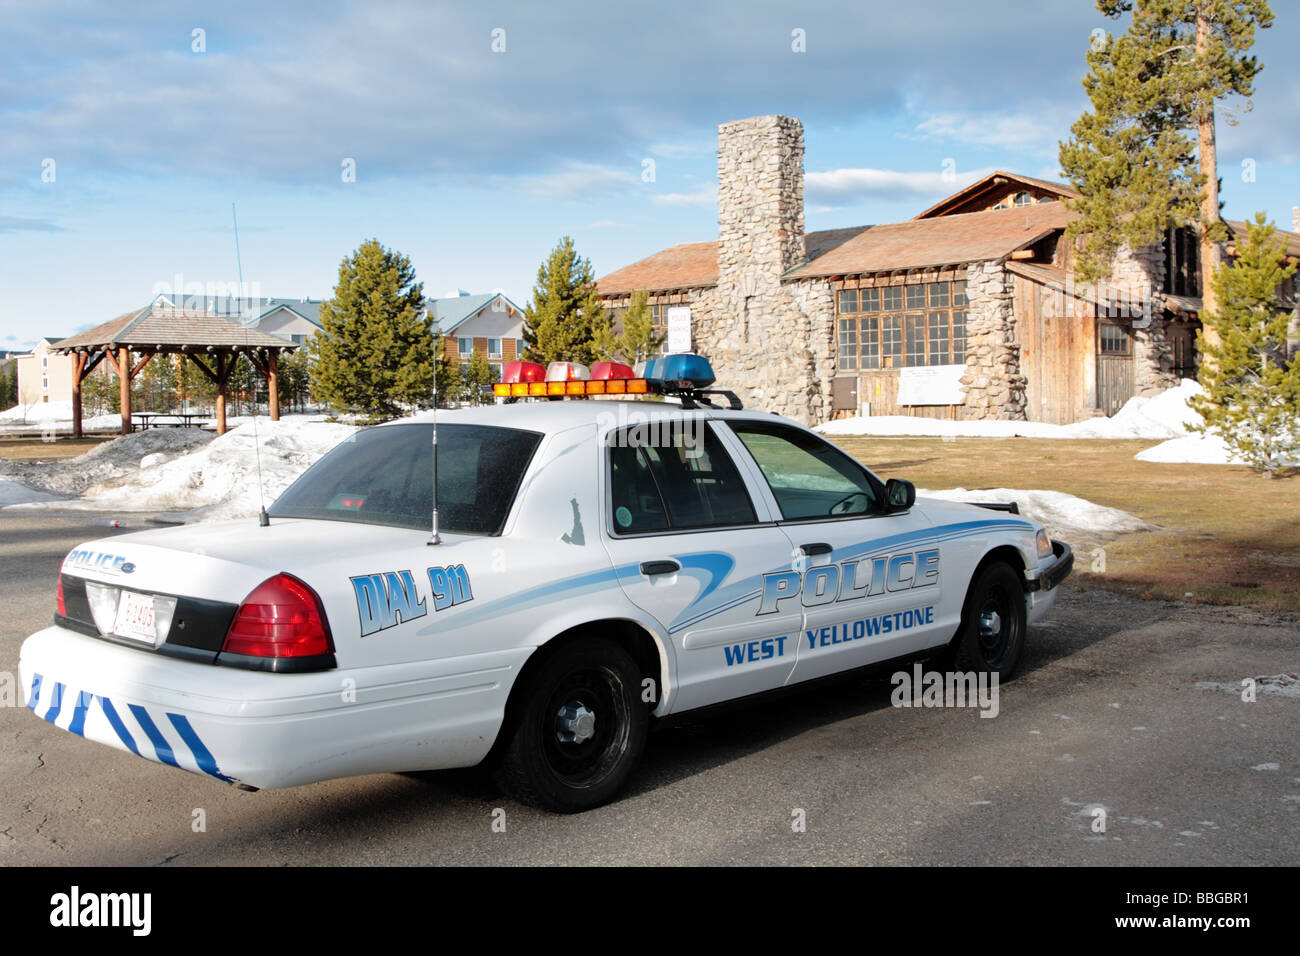 Police car parked in front of West Yellowstone Police Station in Montana USA - Stock Image